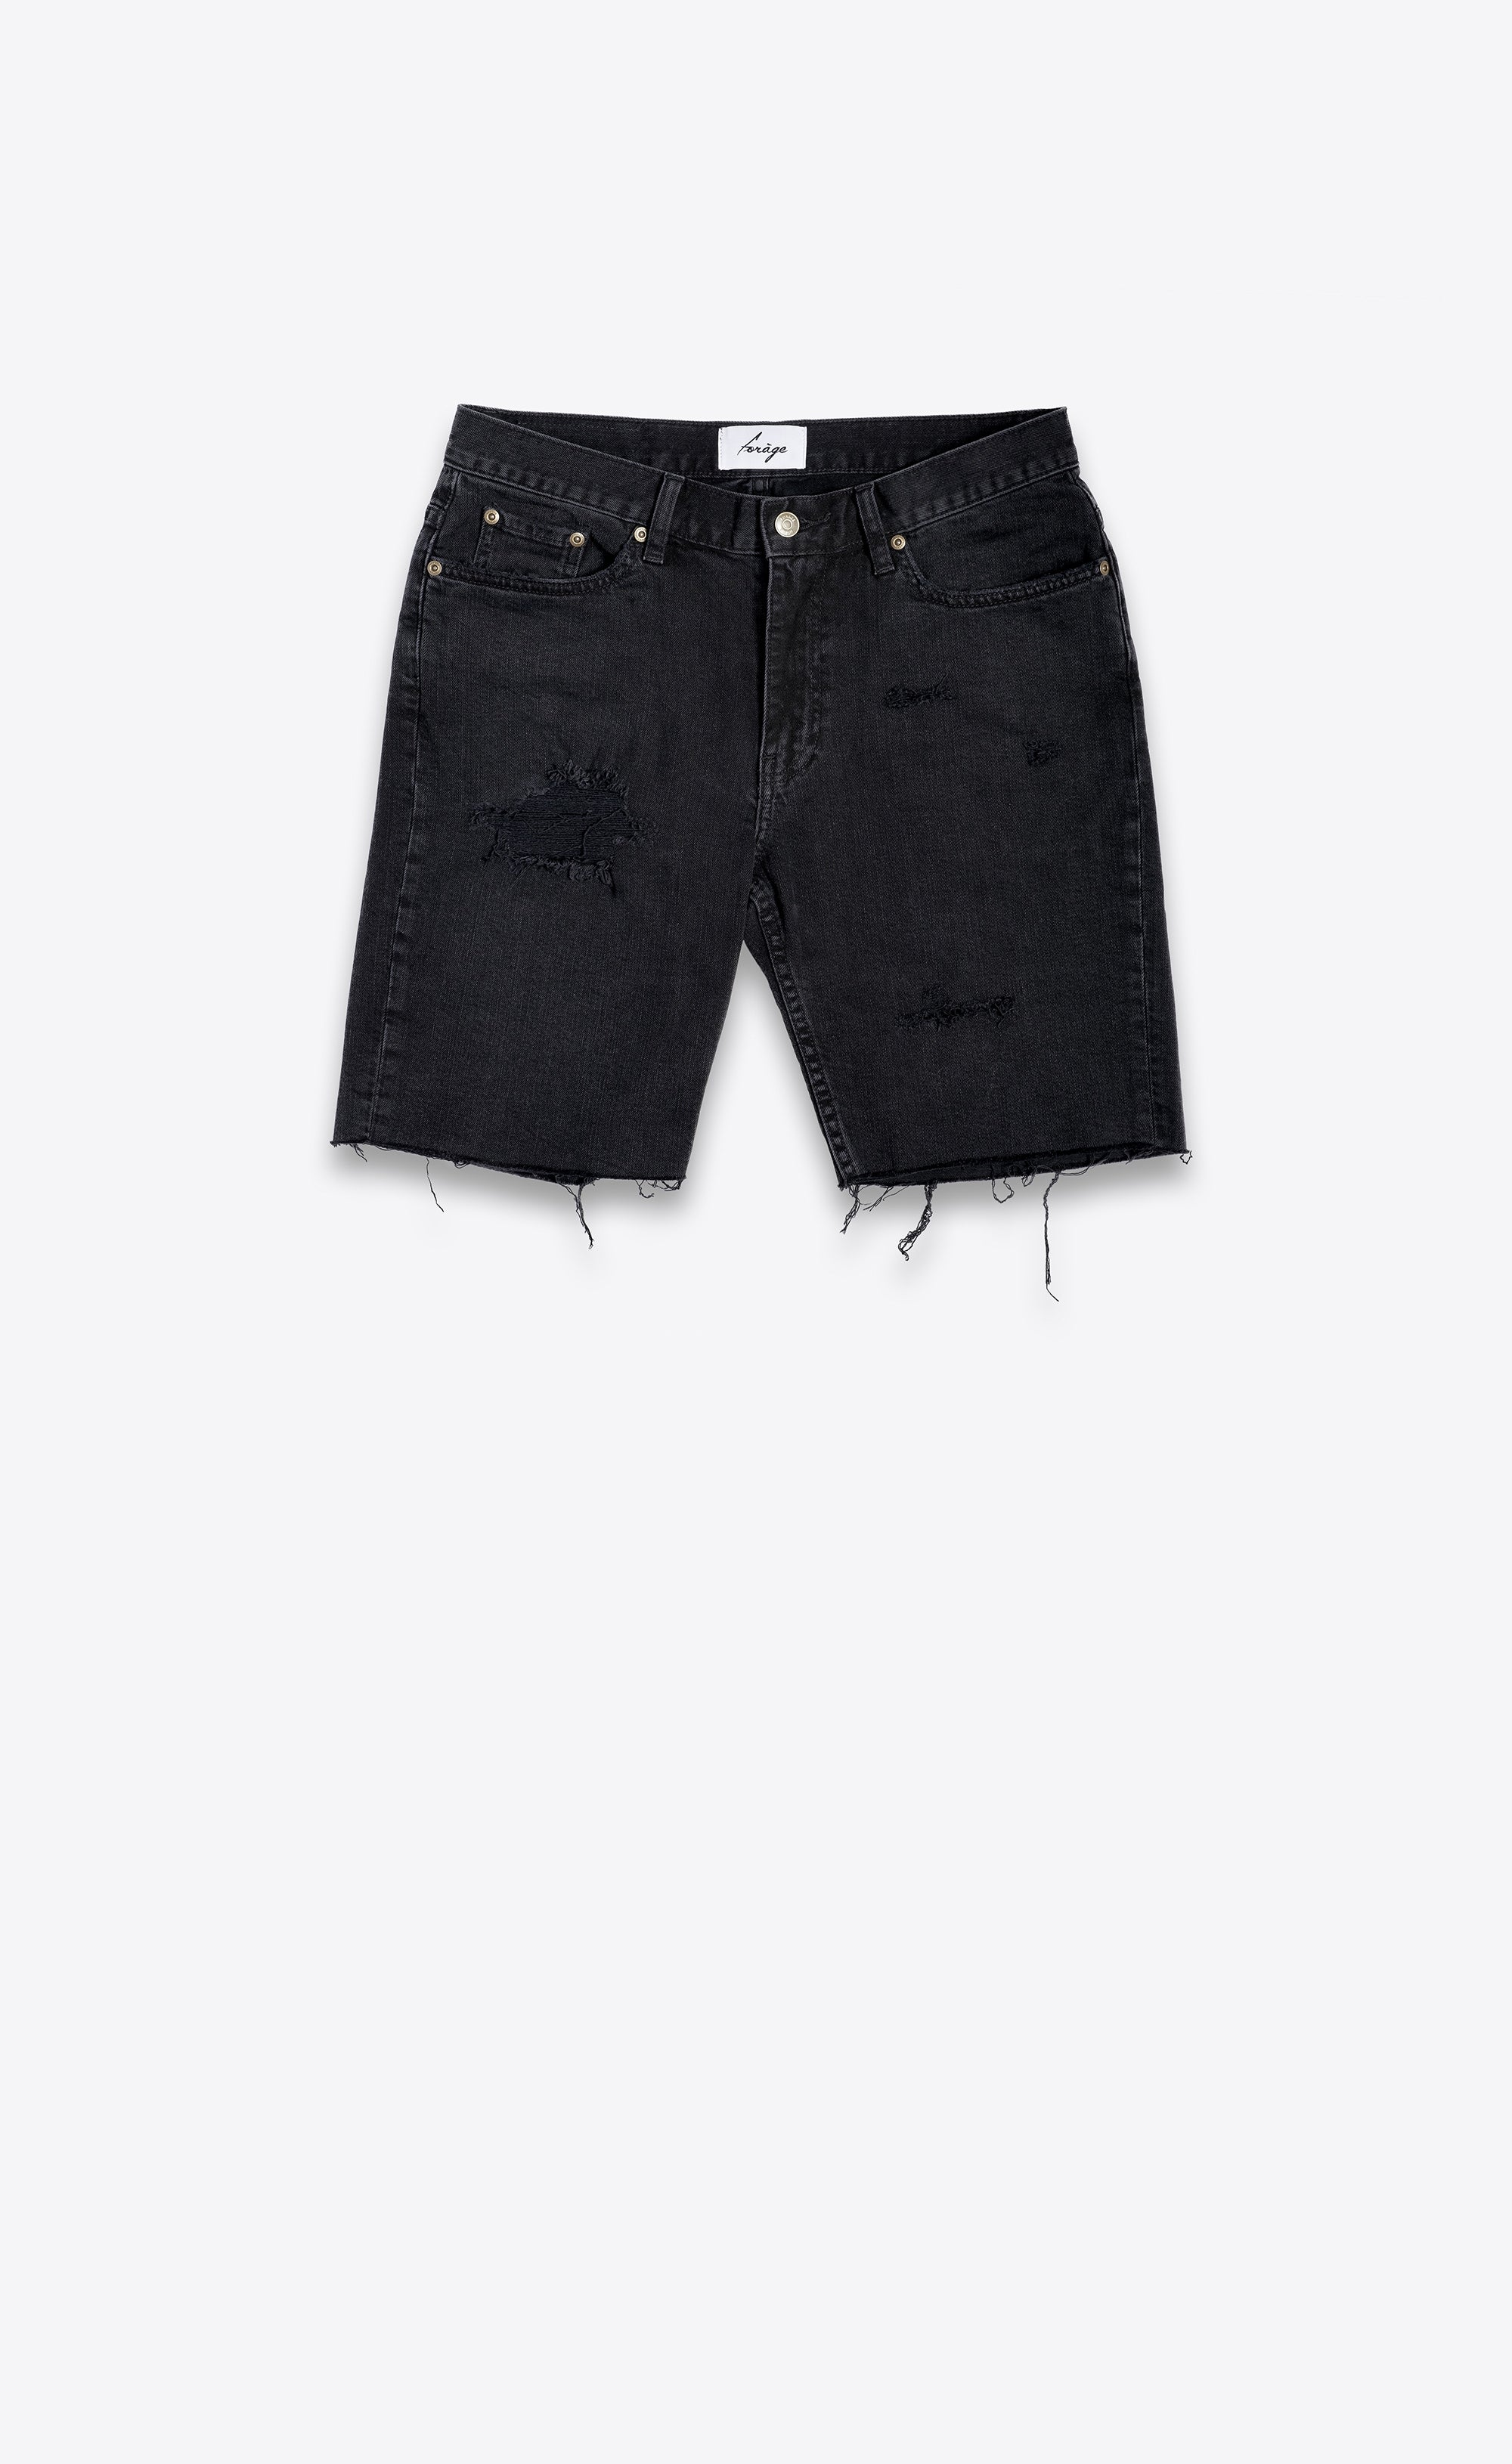 DESTROYED DENIM SHORTS - BLACK - Forage-Clothing